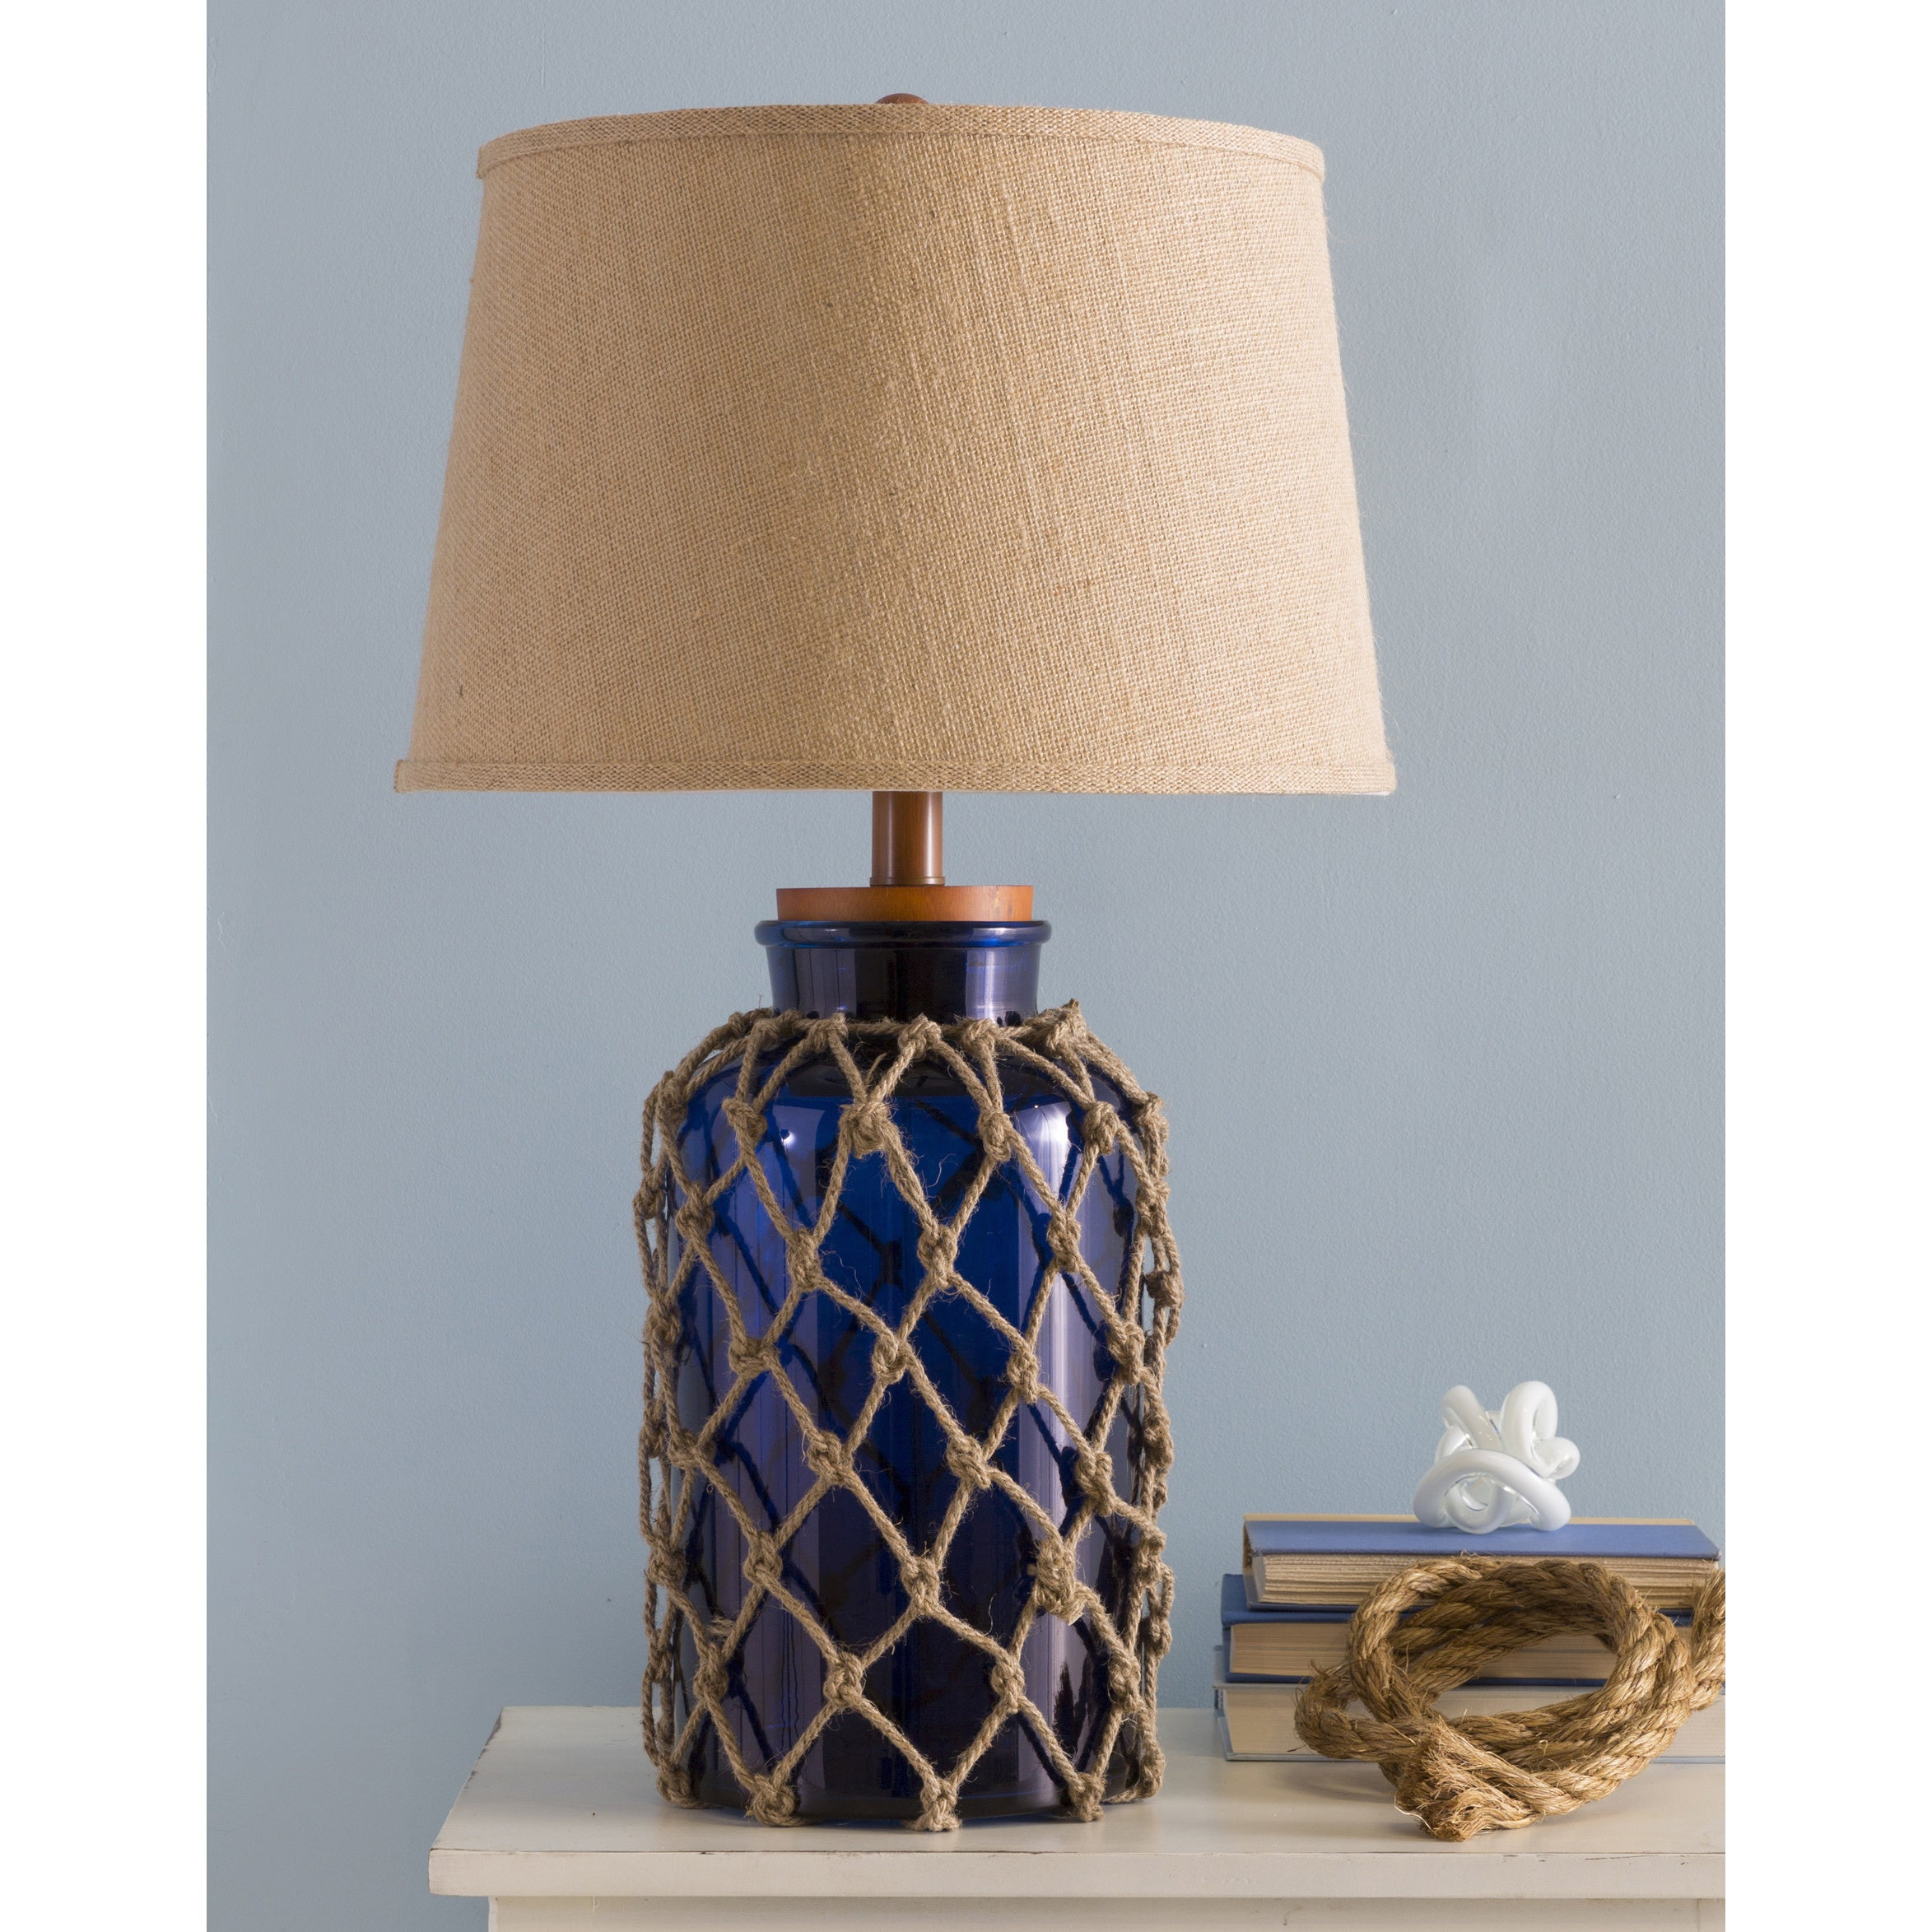 Delicieux Havenside Home Osprey Nautical Glass And Burlap Table Lamp